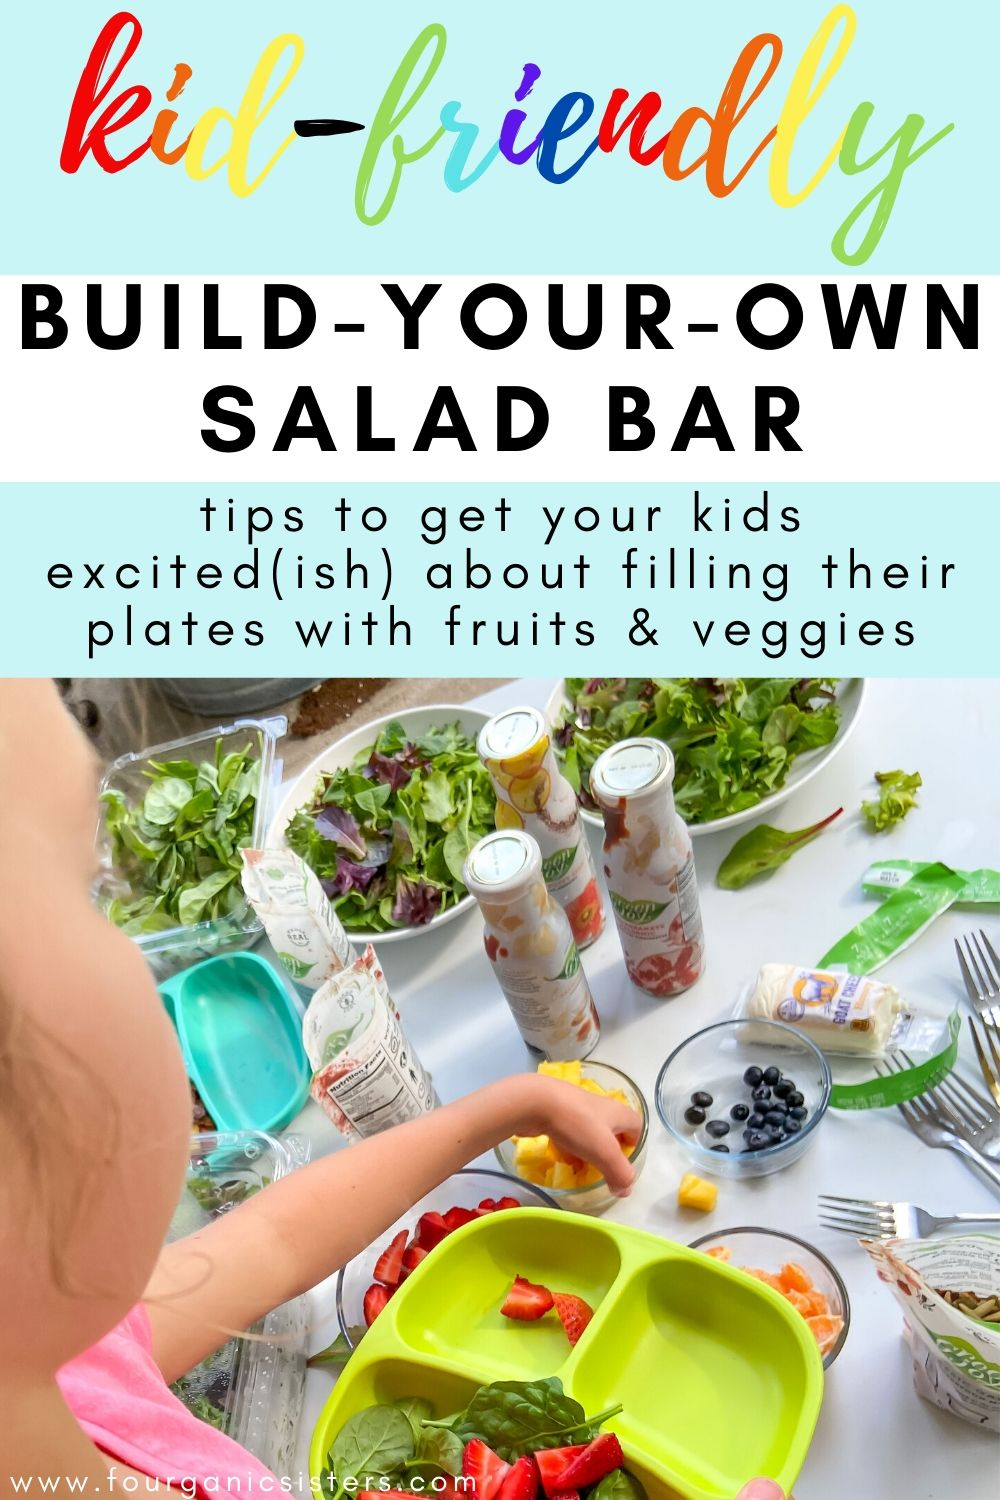 Kid-Friendly Build-Your-Own Salad Bar | Fourganic Sisters